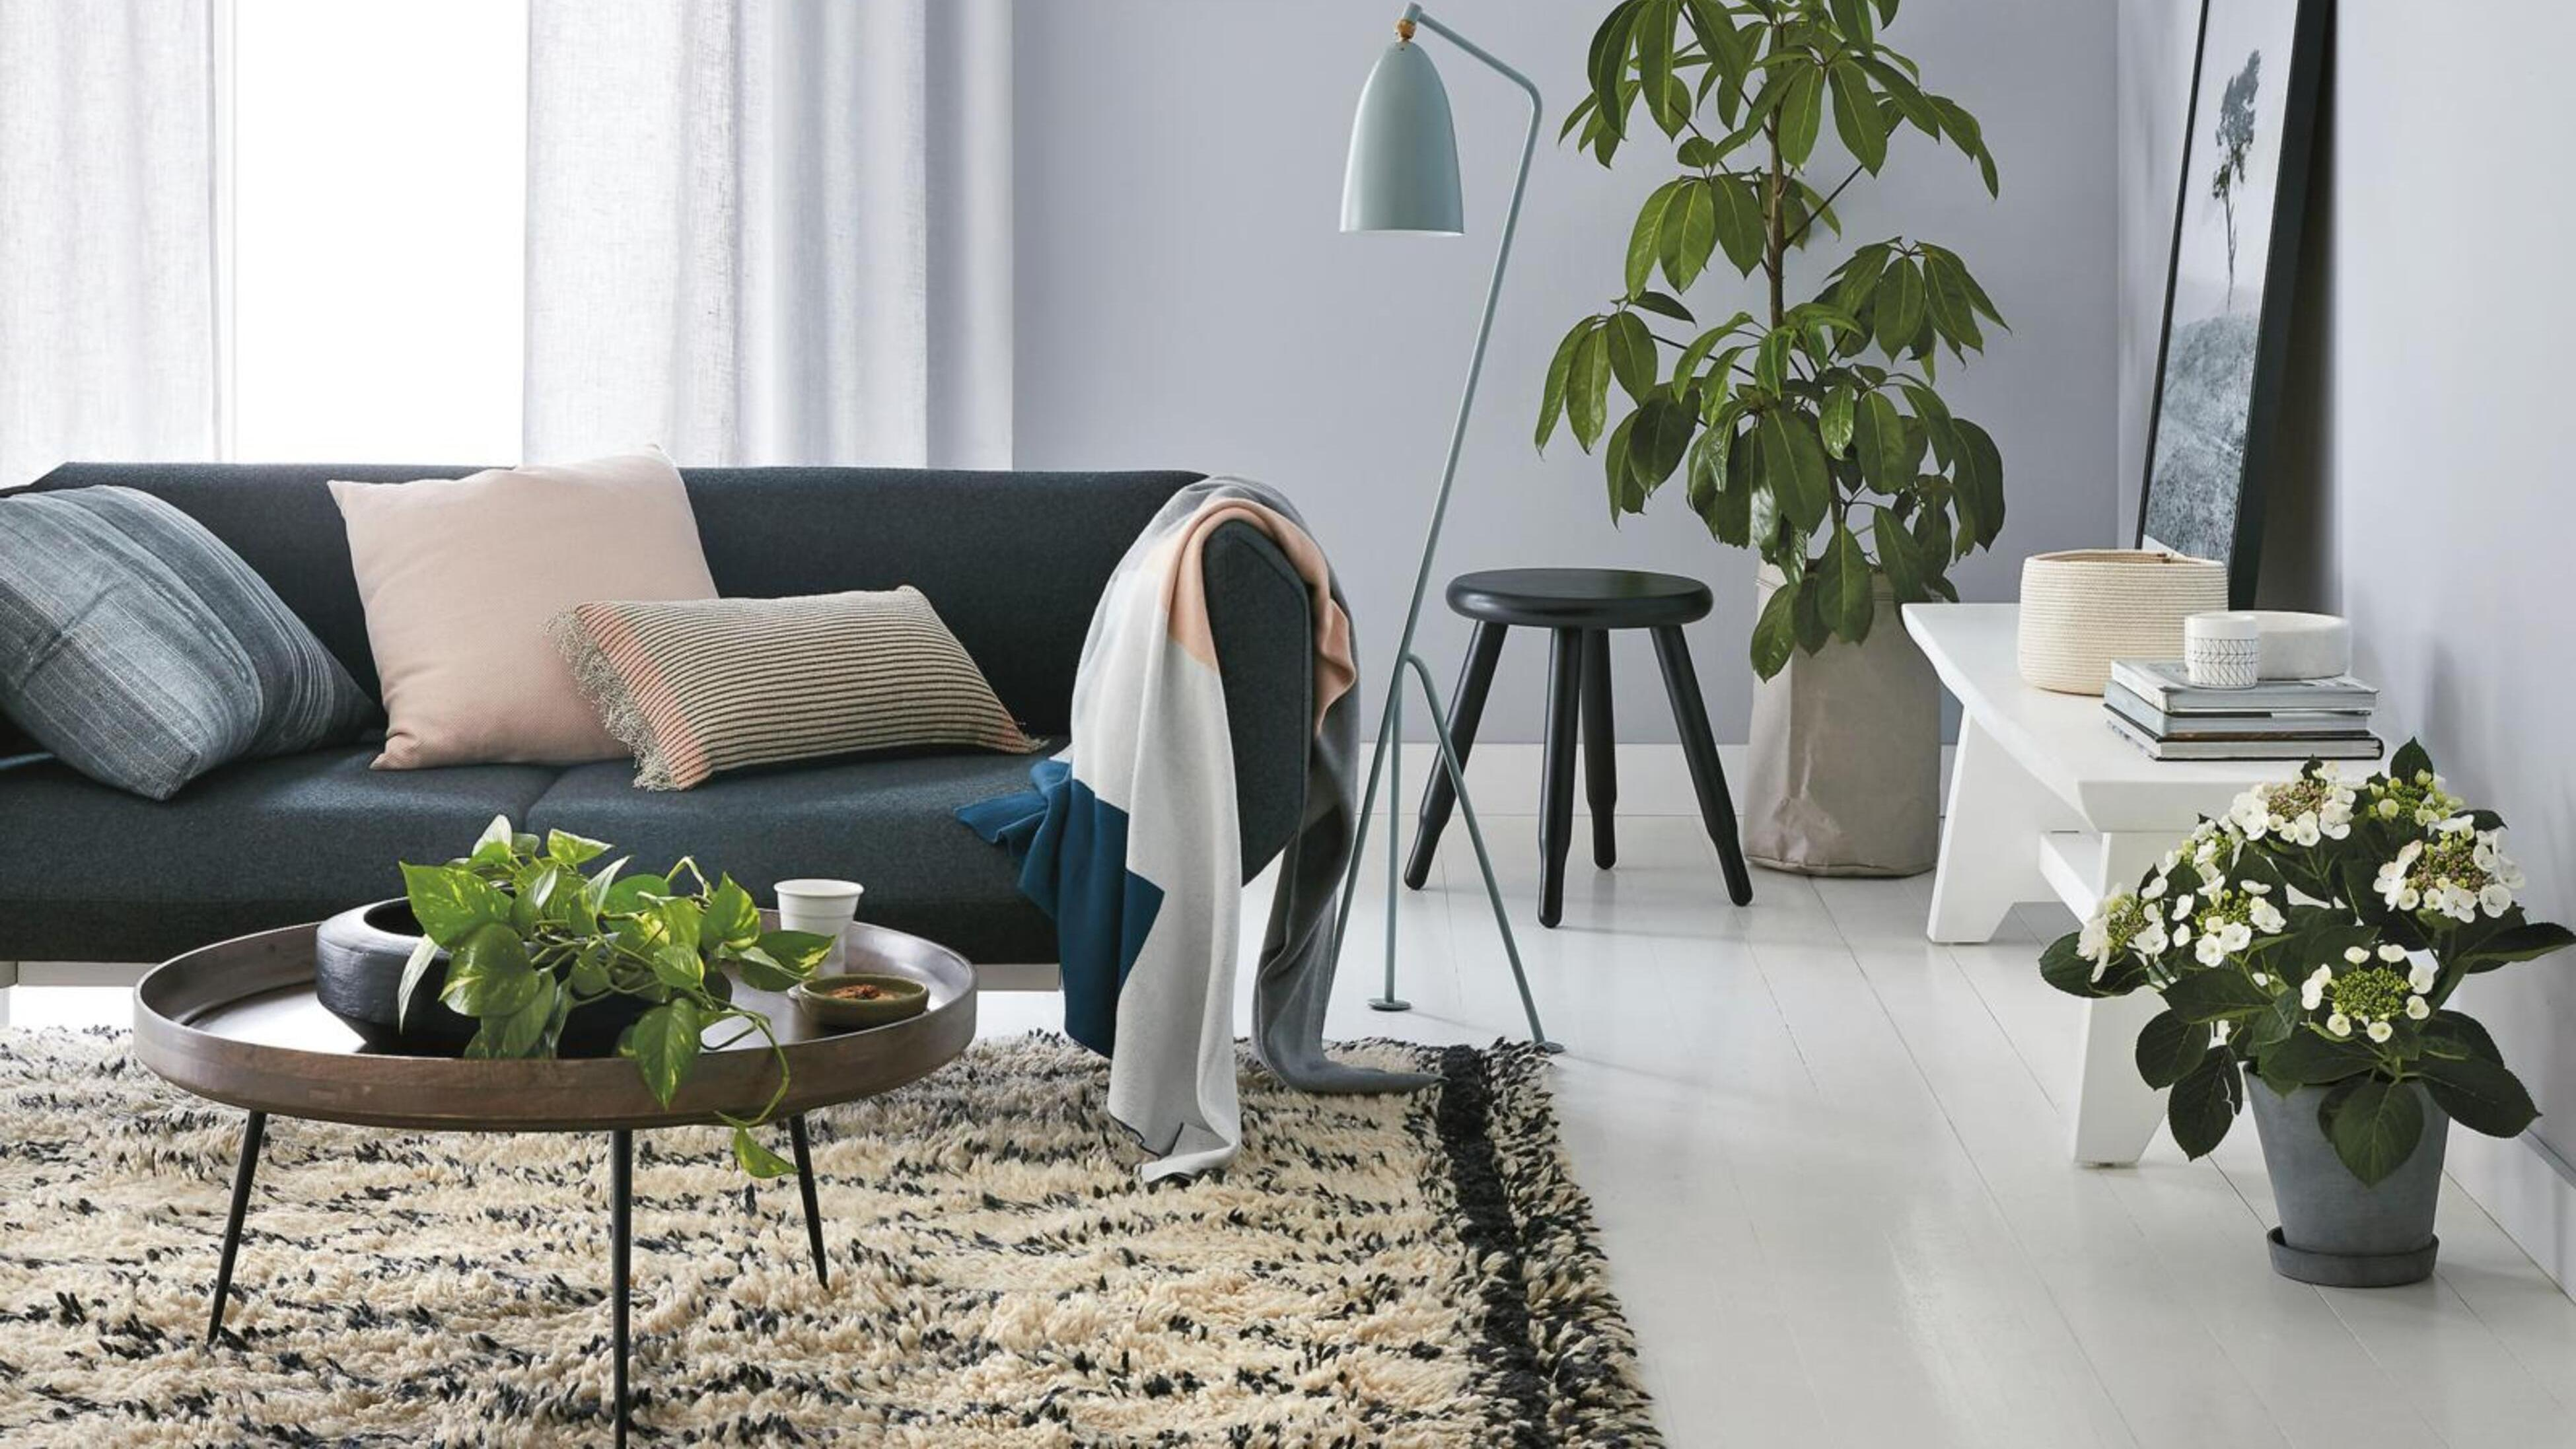 Sofa, coffee table and plants, in room with grey walls.